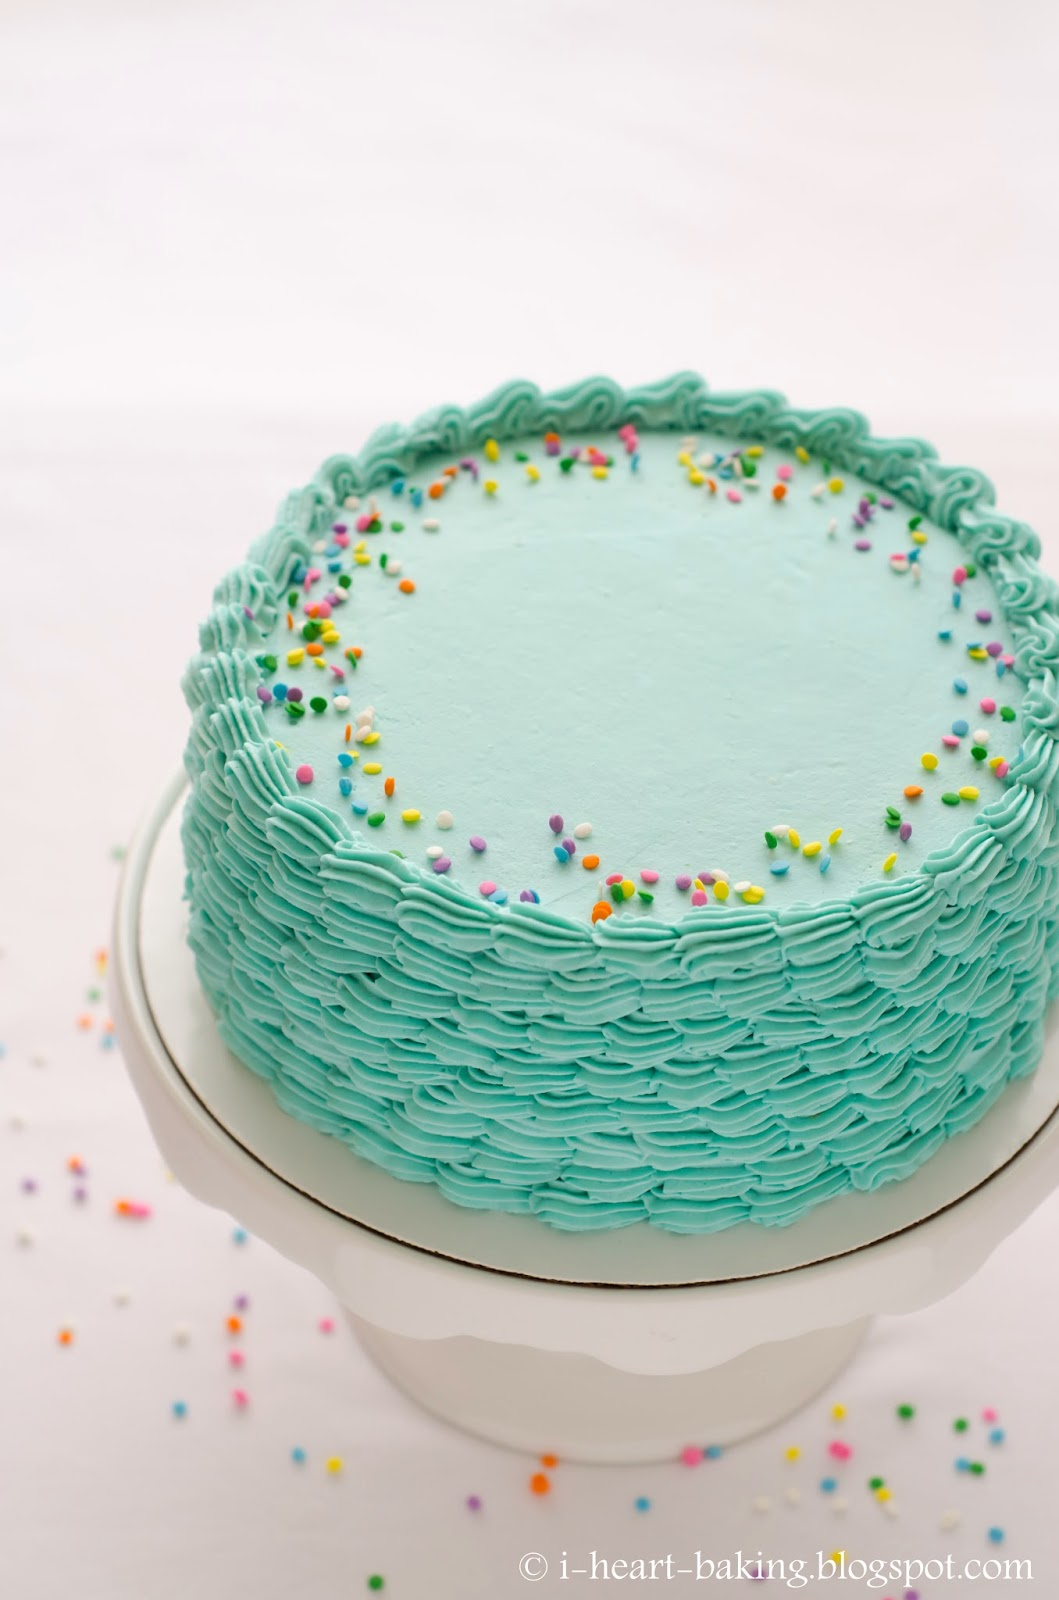 i heart baking!: blue funfetti birthday cake with piped ...